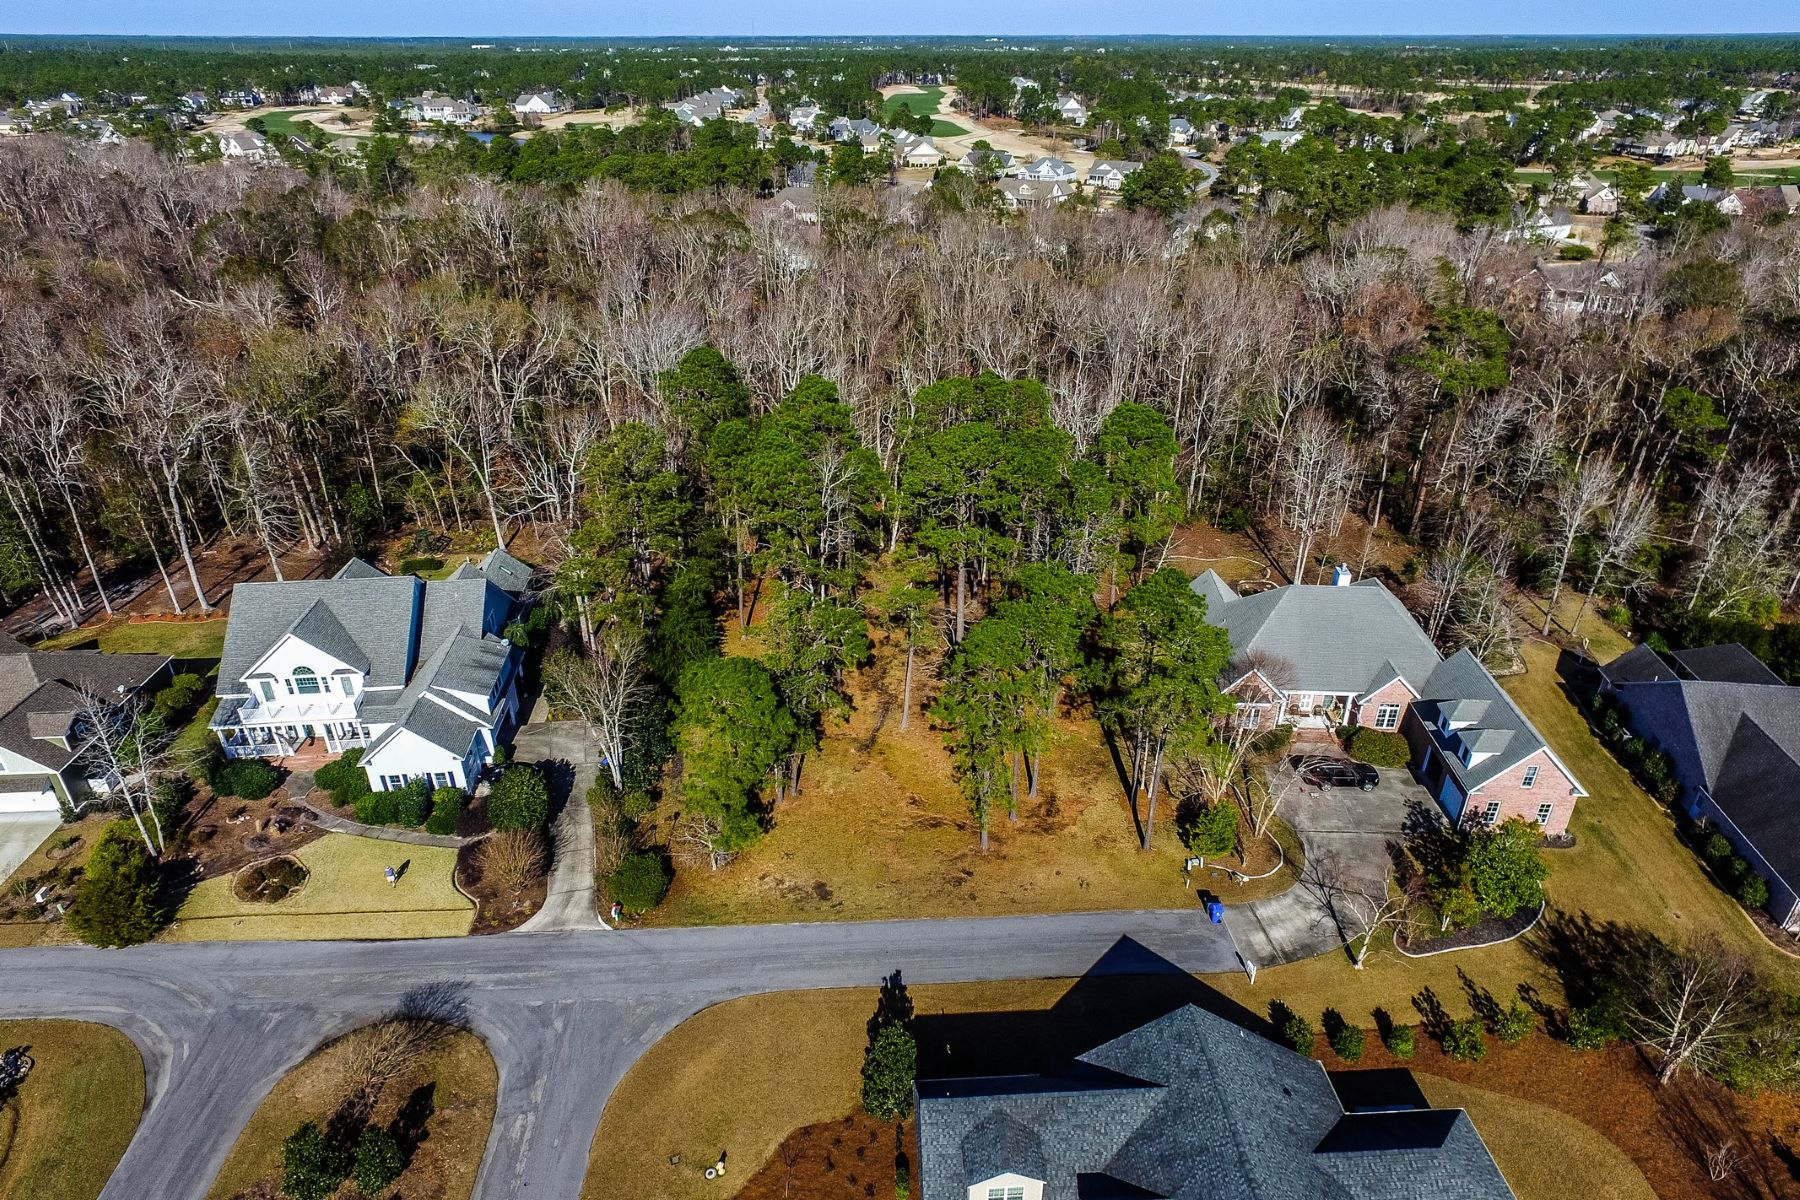 Đất đai vì Bán tại Wide and Deep Homesite in Highly Sought After Community 4388 Ascot Circle SE, Southport, Bắc Carolina 28461 Hoa Kỳ